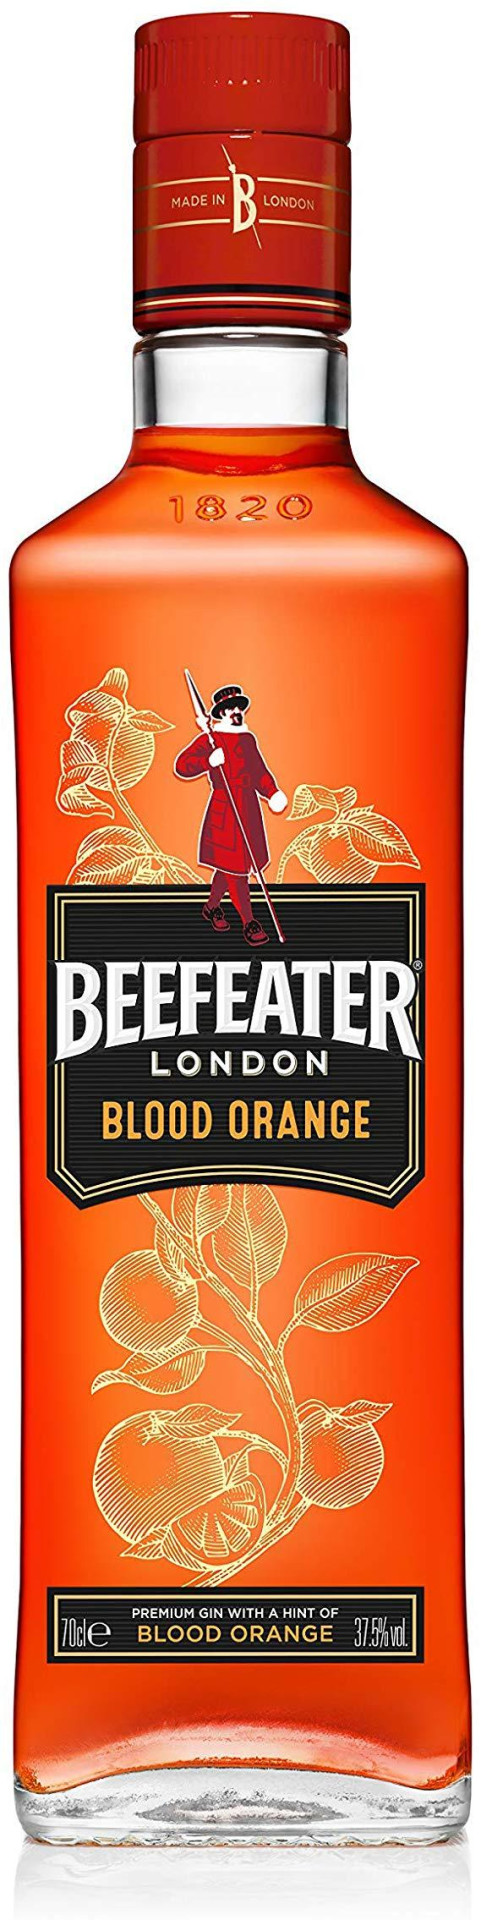 Beefeater Blood Orange 0.7l